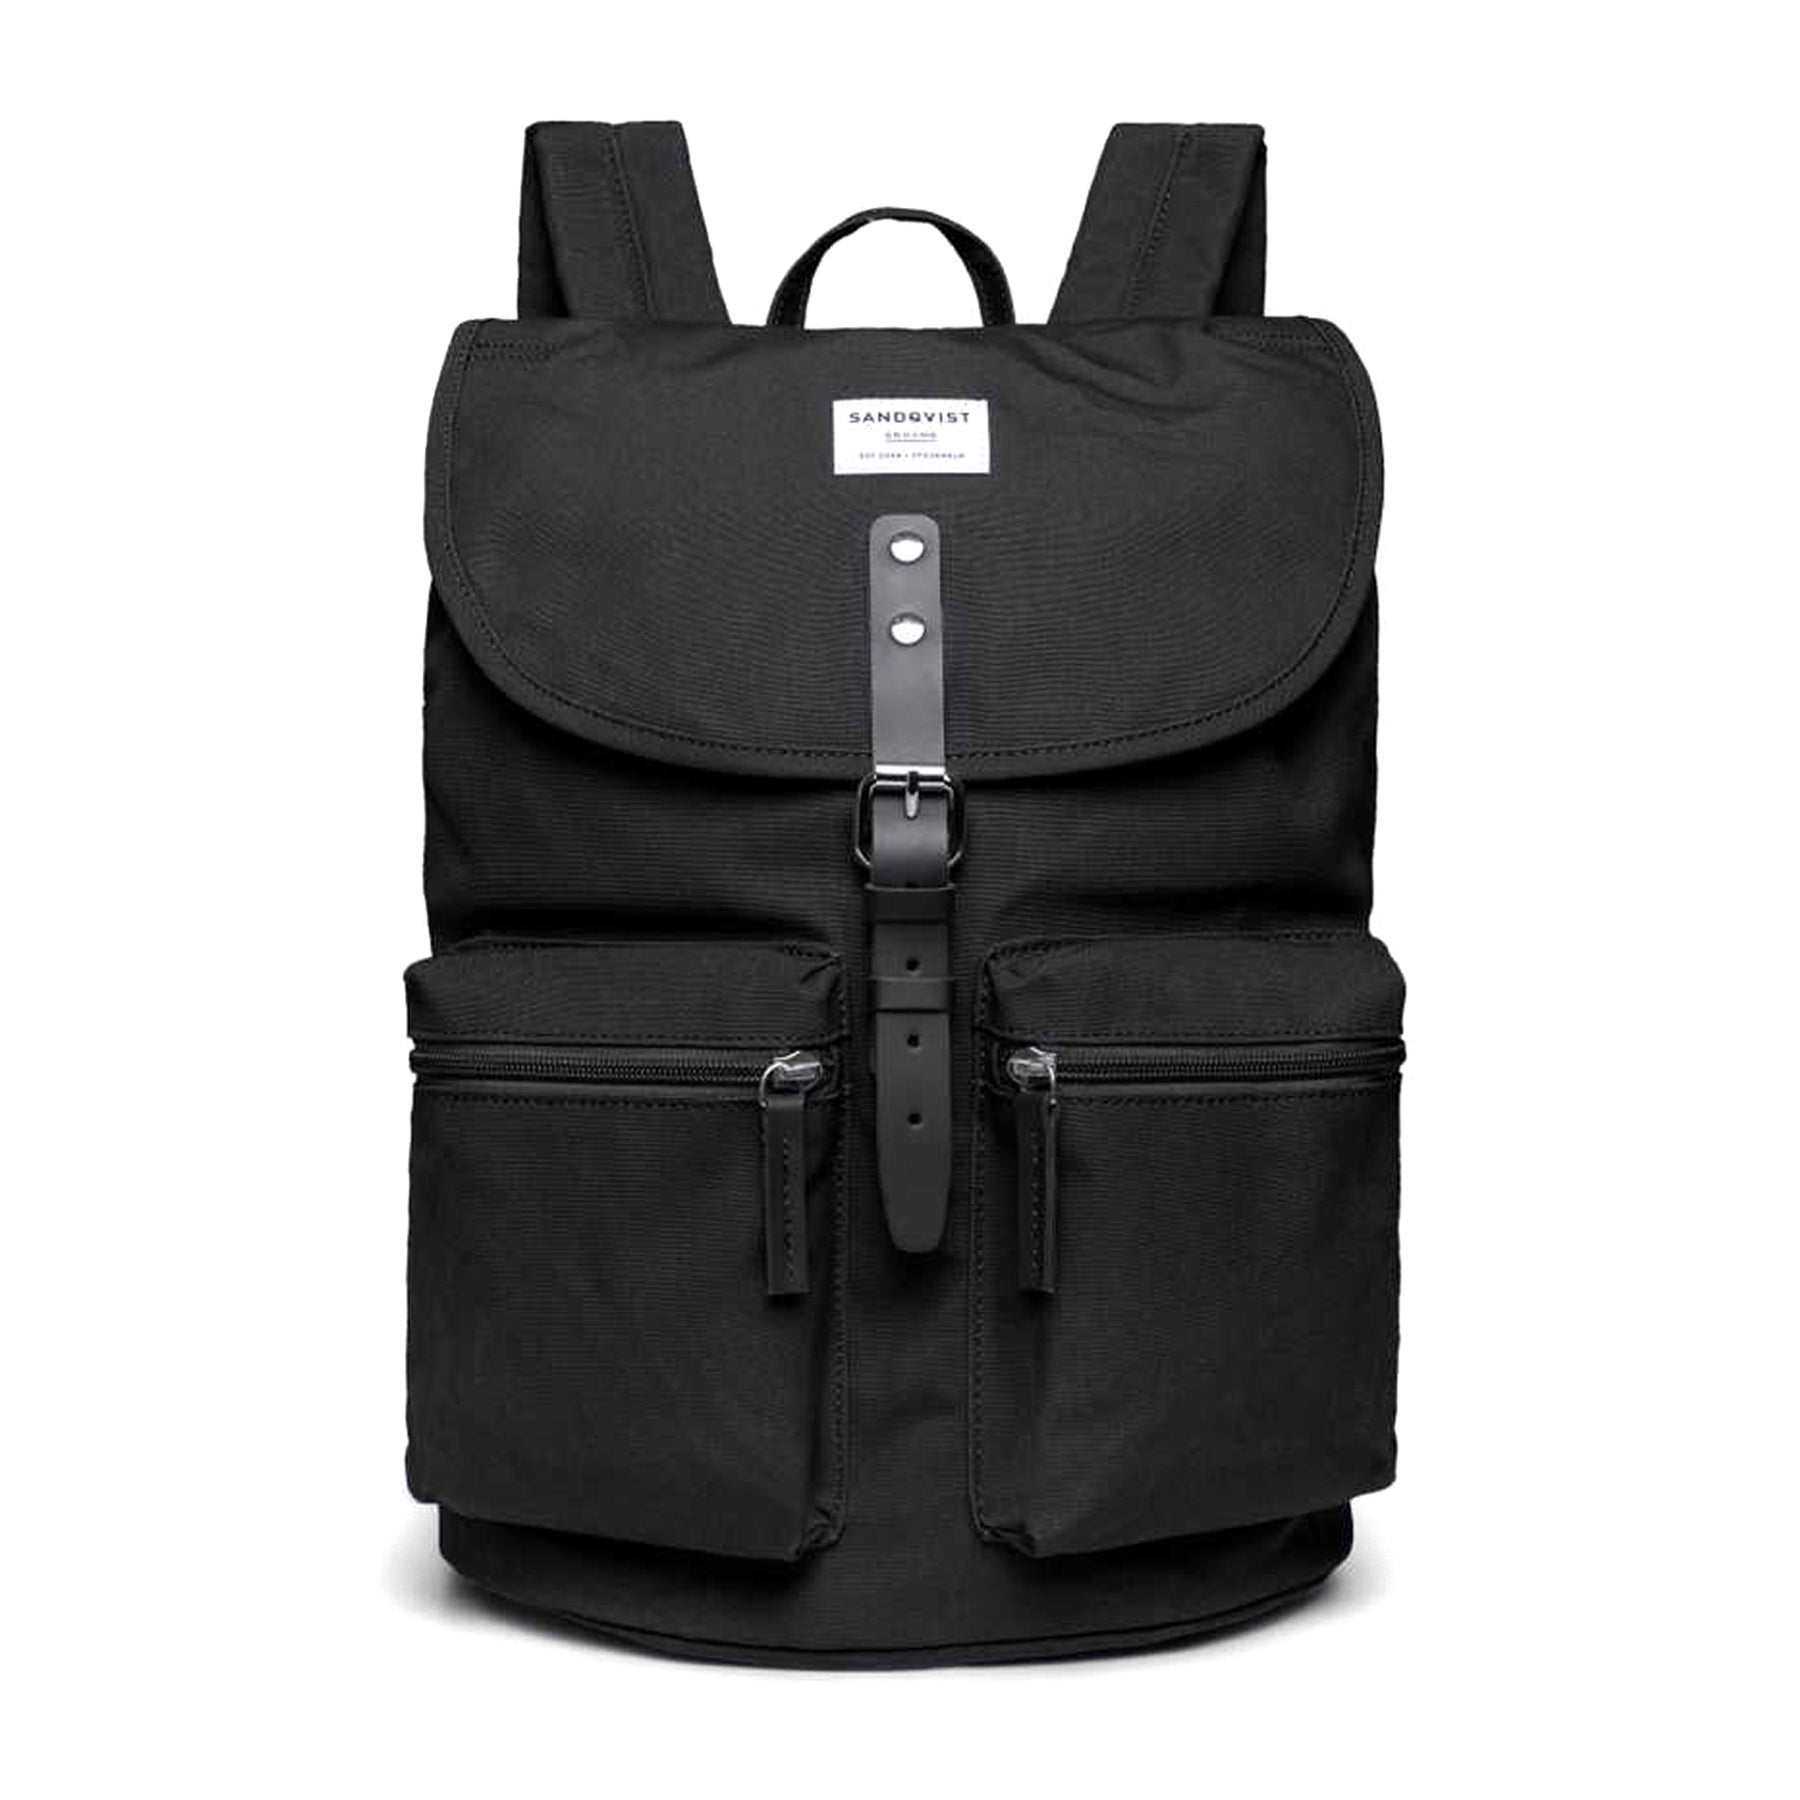 Sandqvist Roald Backpack - Black